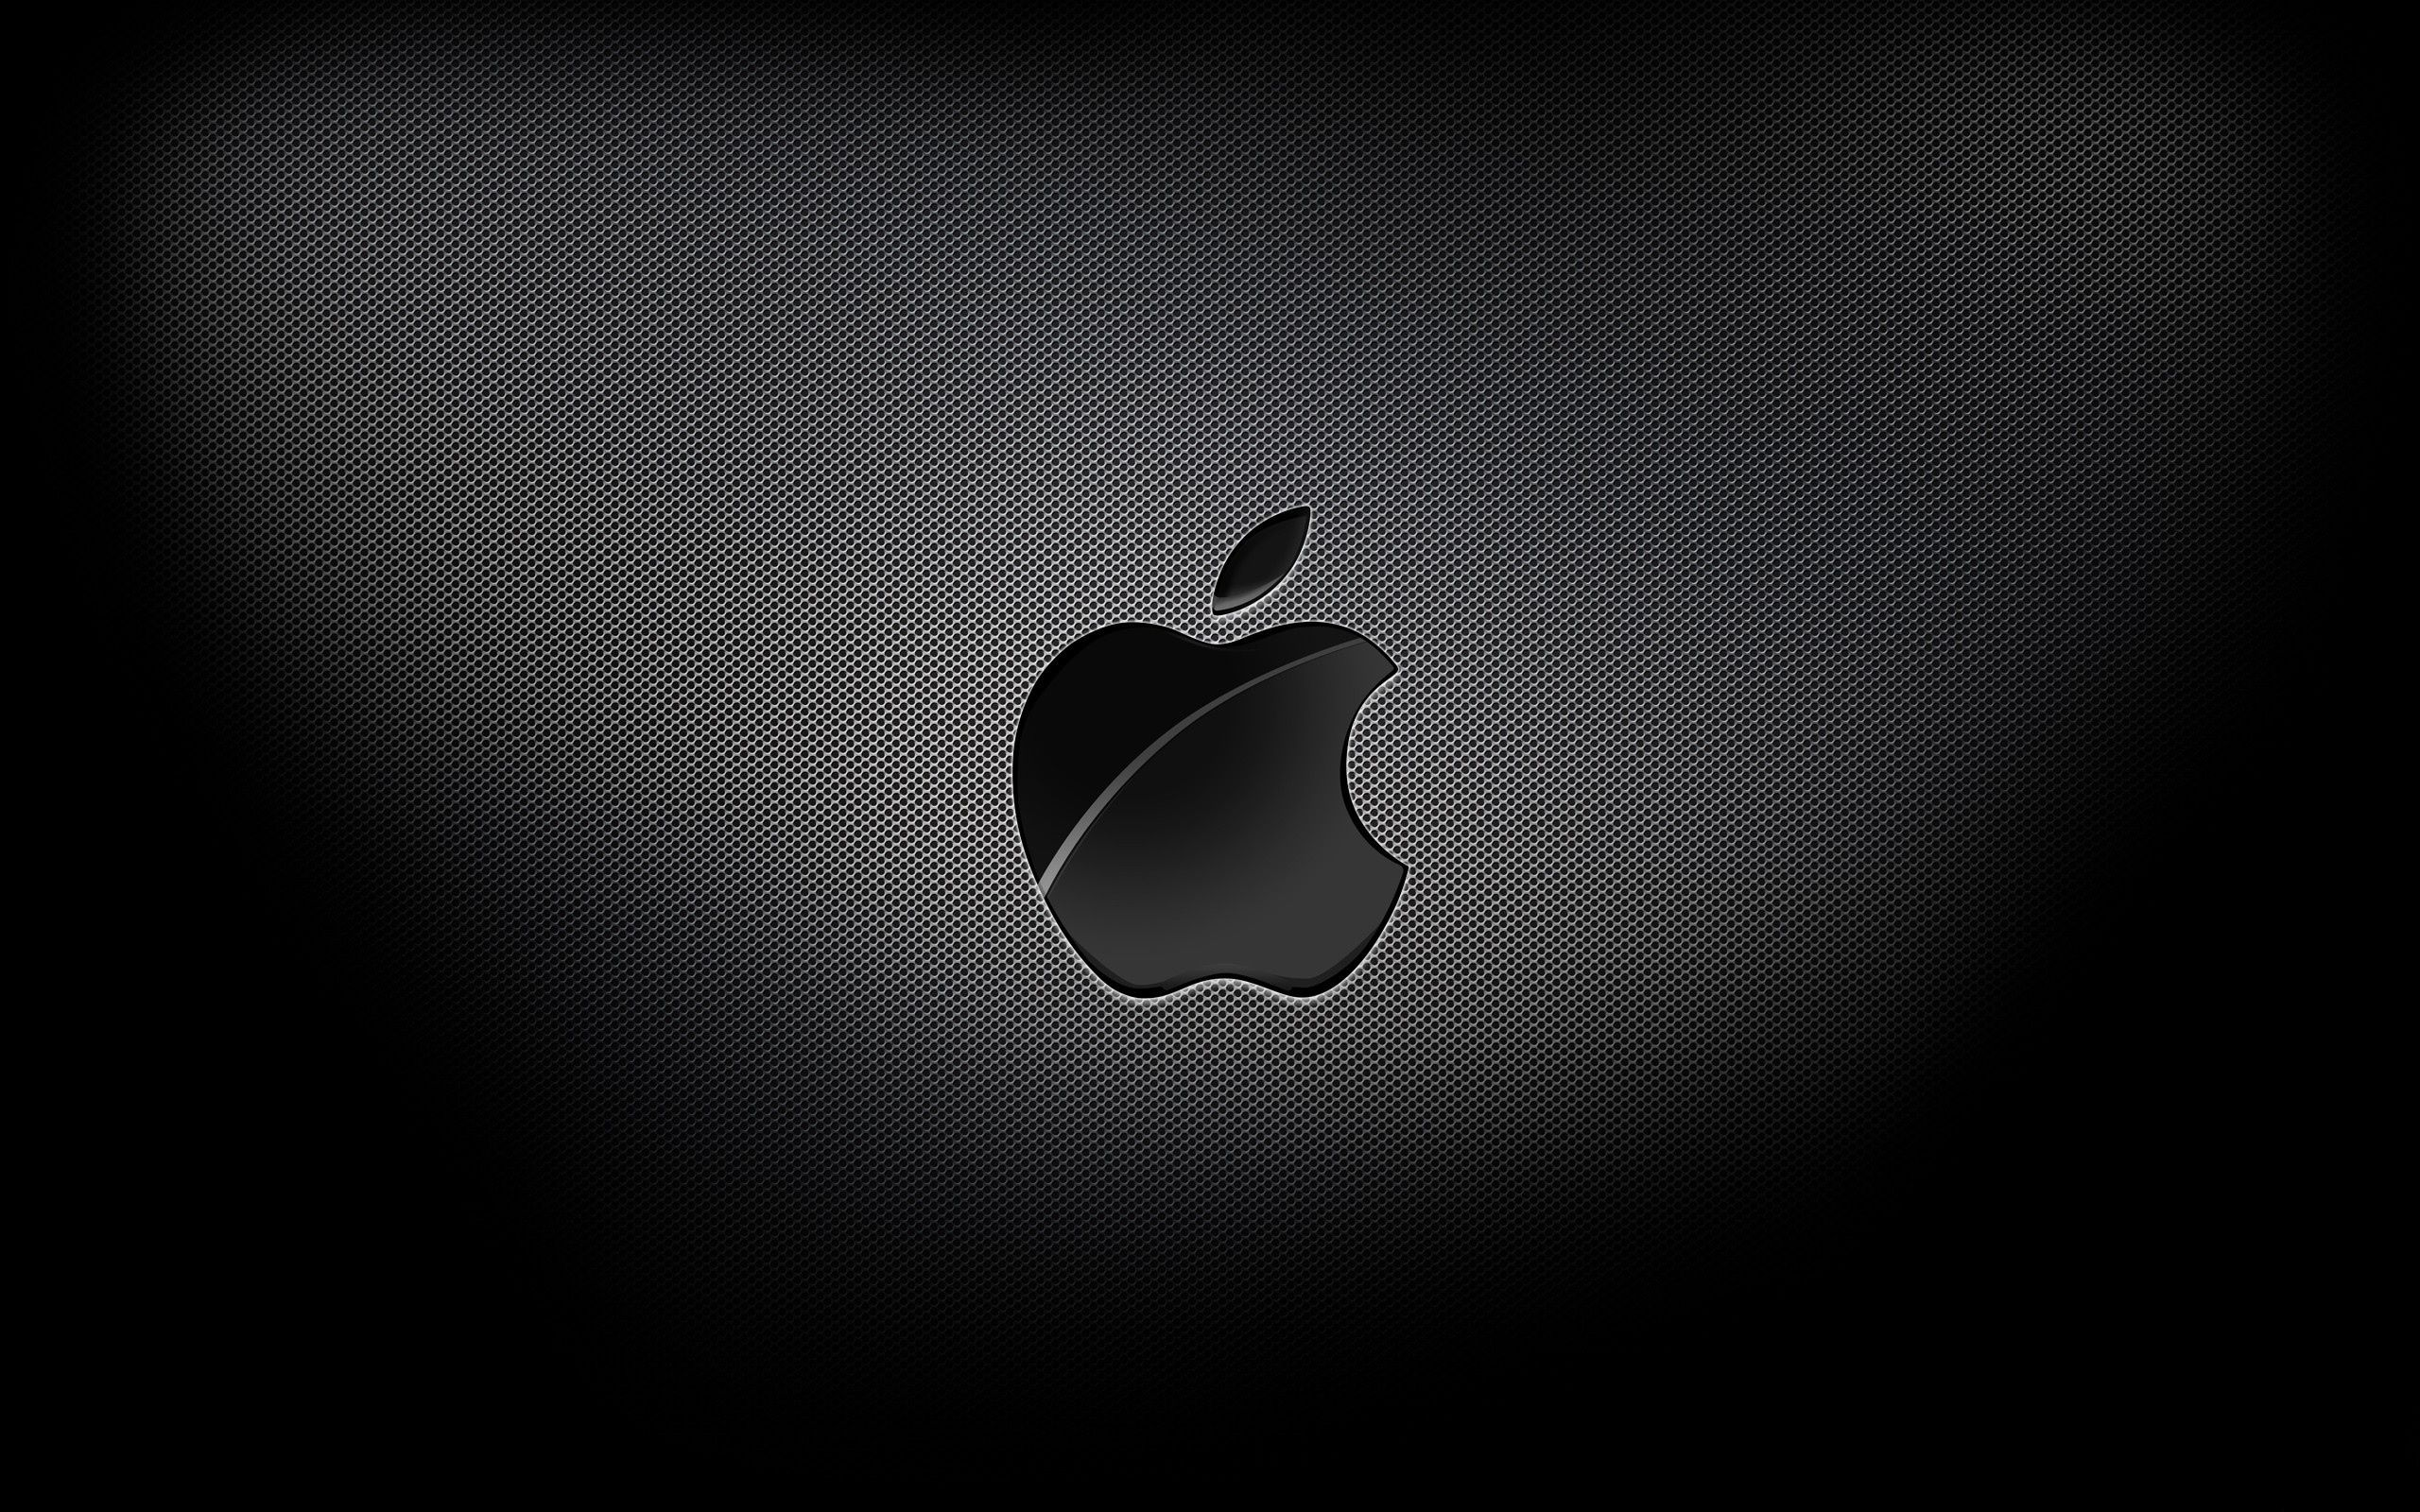 Great Wallpaper Mac Black - c7bb5a3709fab9d076ad0b35ccf7ce73  Perfect Image Reference_388216.jpg